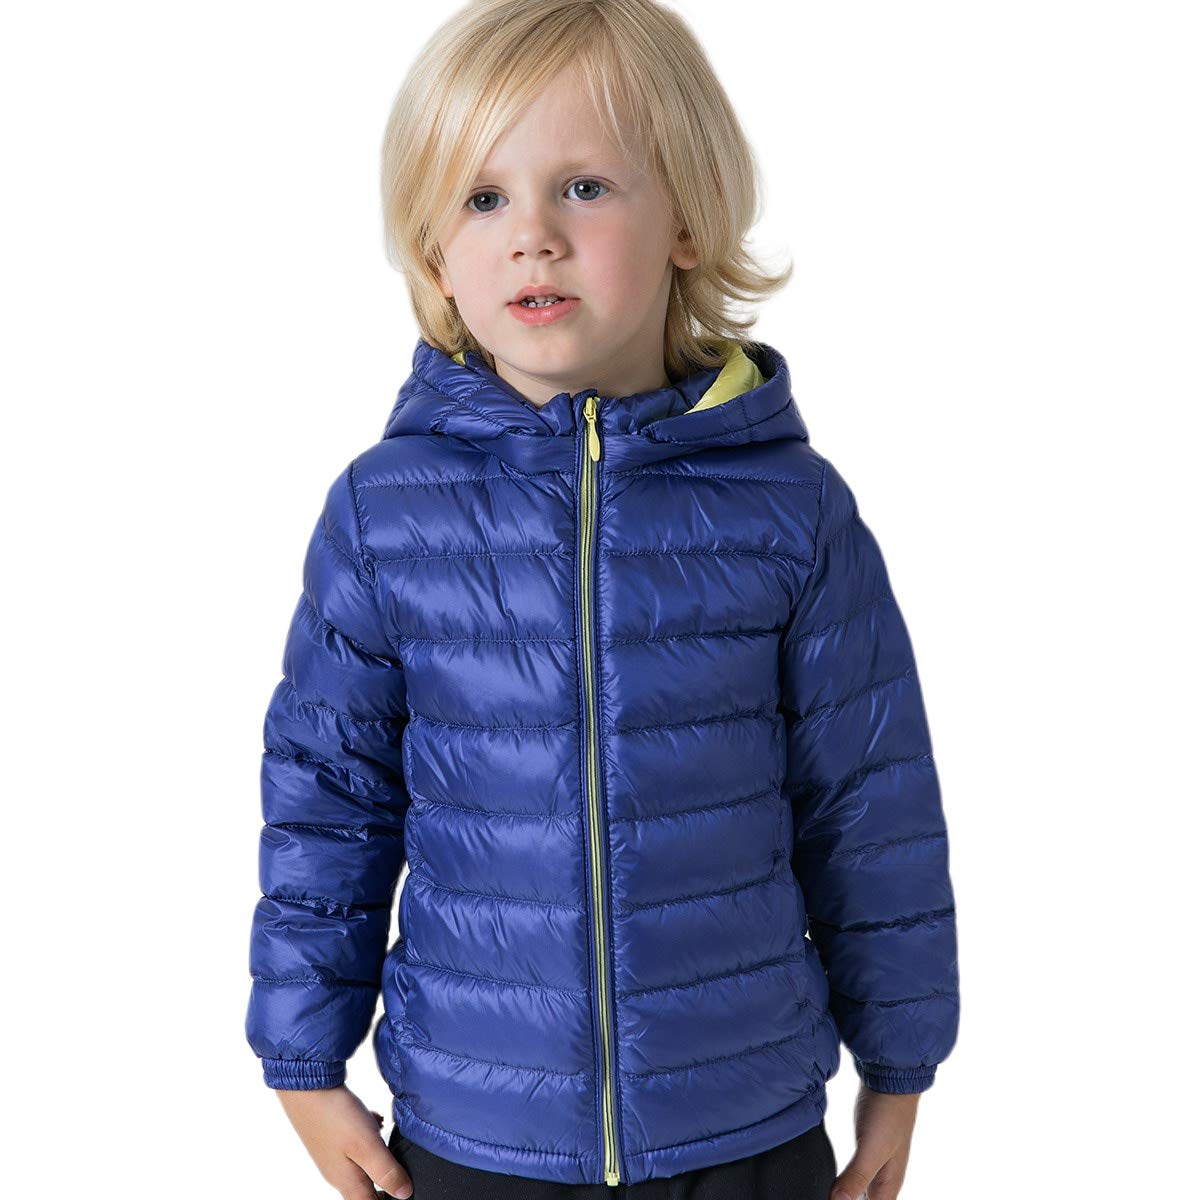 marc janie Girls Boys' Light Weight Down Jacket Packable Removable Hooded Down Puffer Coat, 36+ Colors 24 Months Sea Blue by marc janie